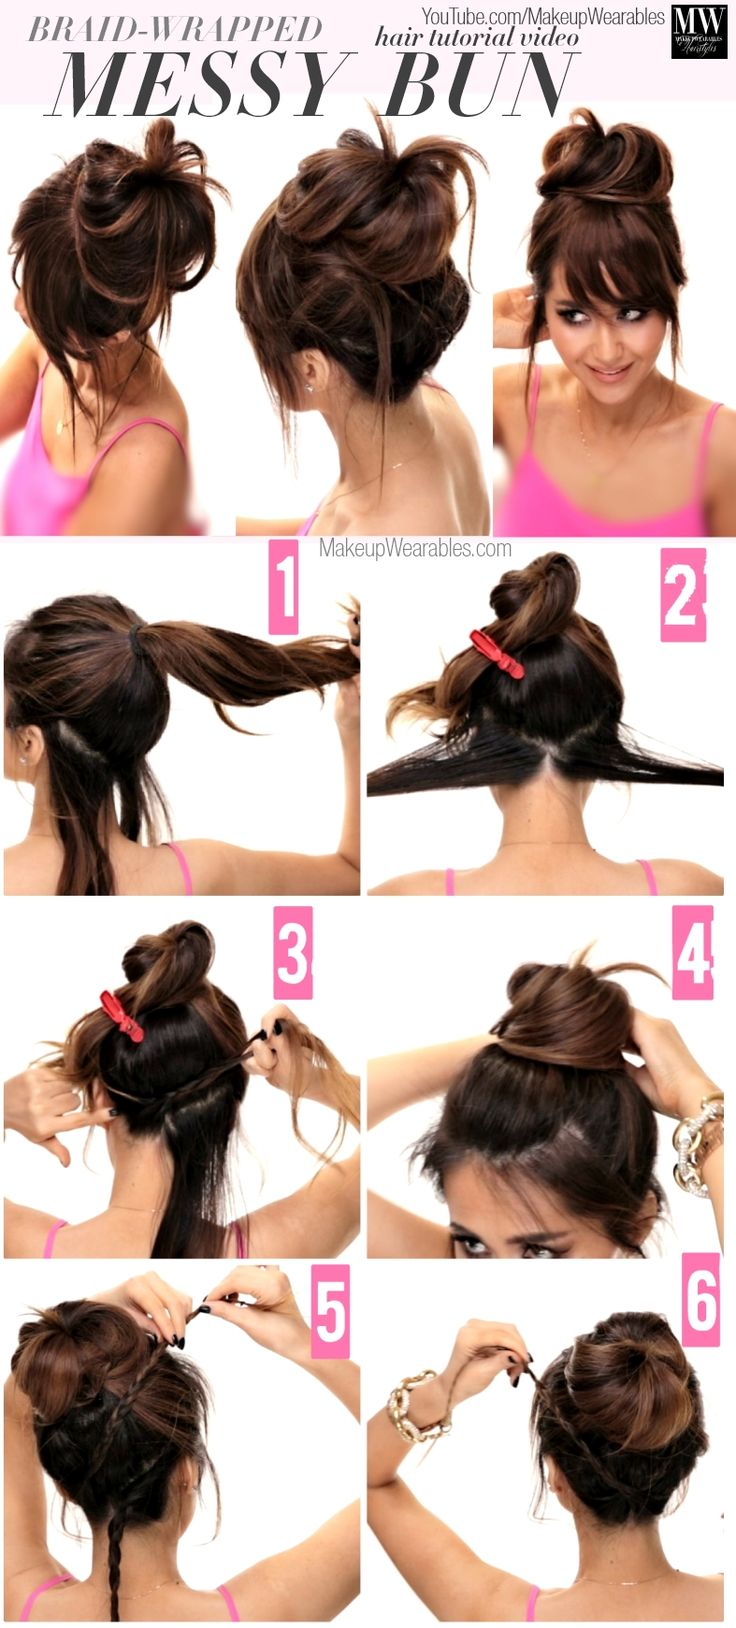 Summer Hairstyles How To Lazy Girl S Messy Bun Hairstyles